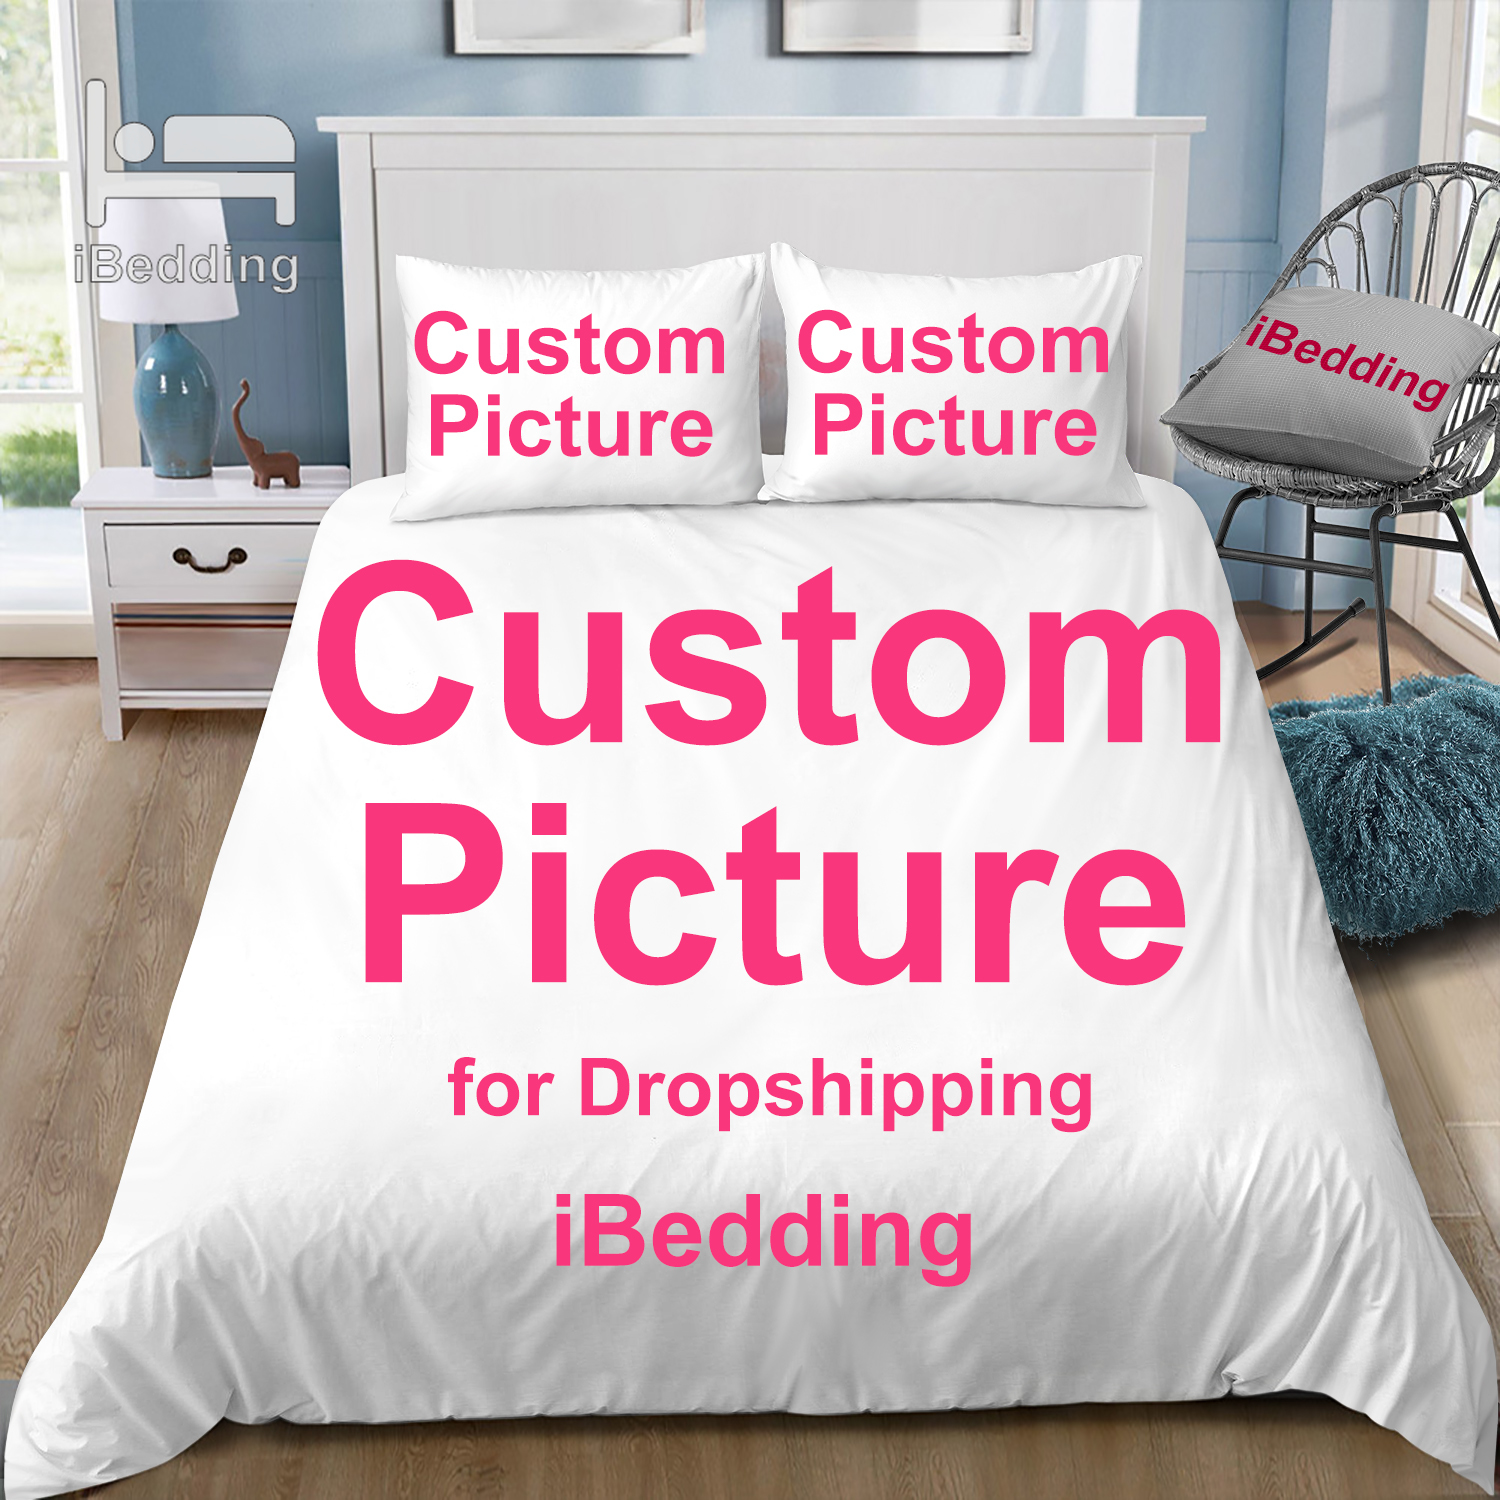 New Custom Image Bedding Set Customized 3D Printed Duvet Cover Sets with Pillowcase Twin Full Queen King Size POD Dropshipping